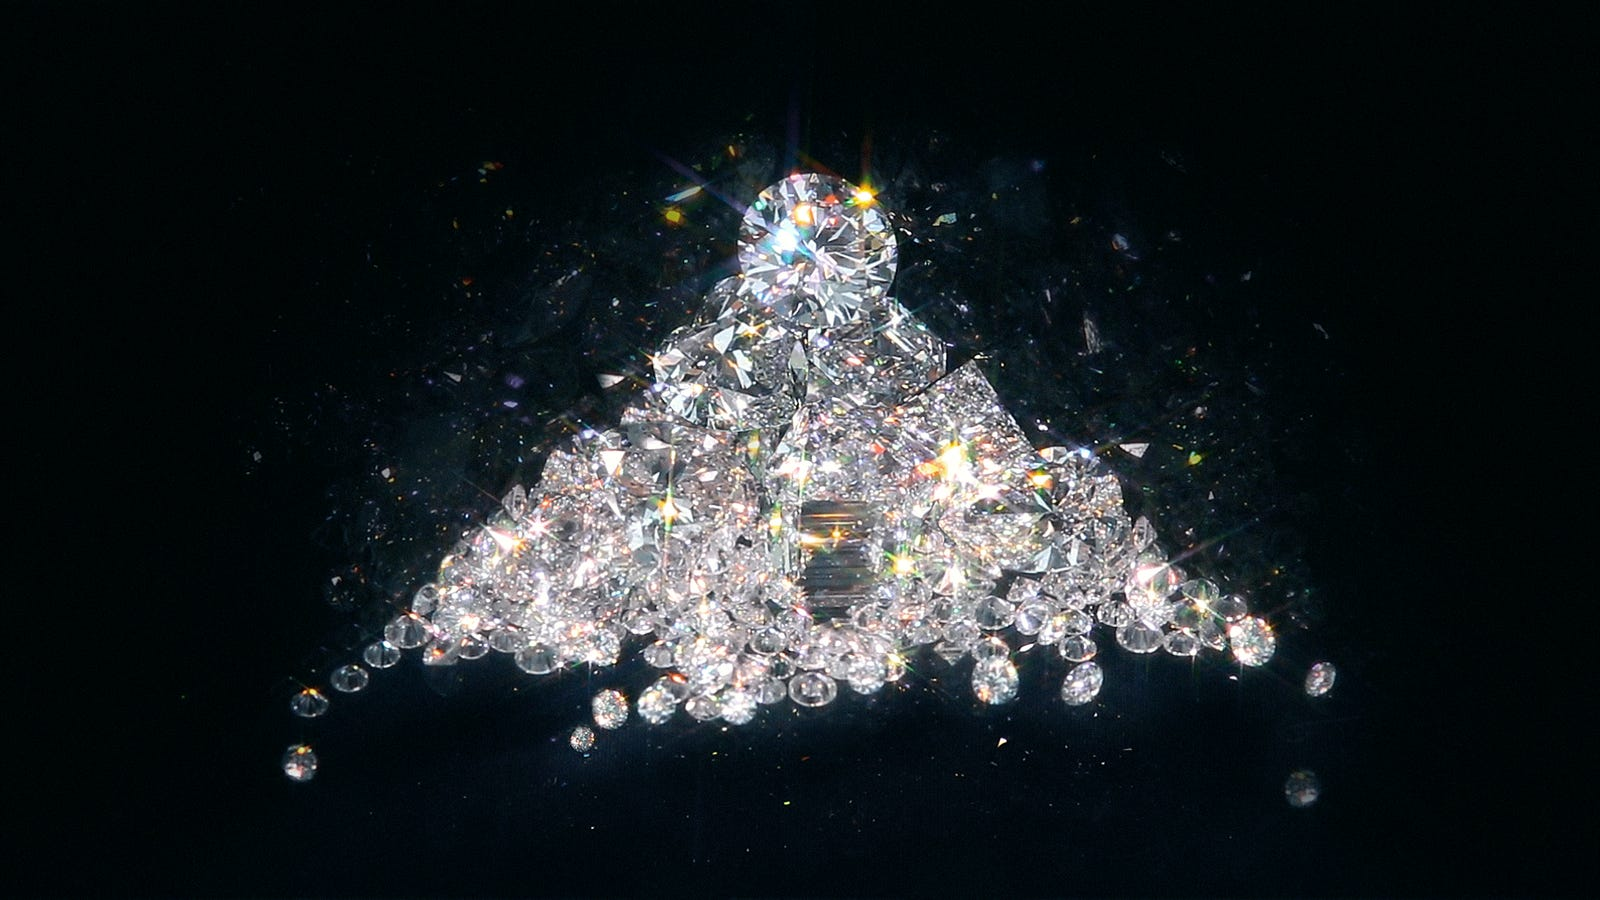 chemistry diamonds earther lab-grown-diamonds mining